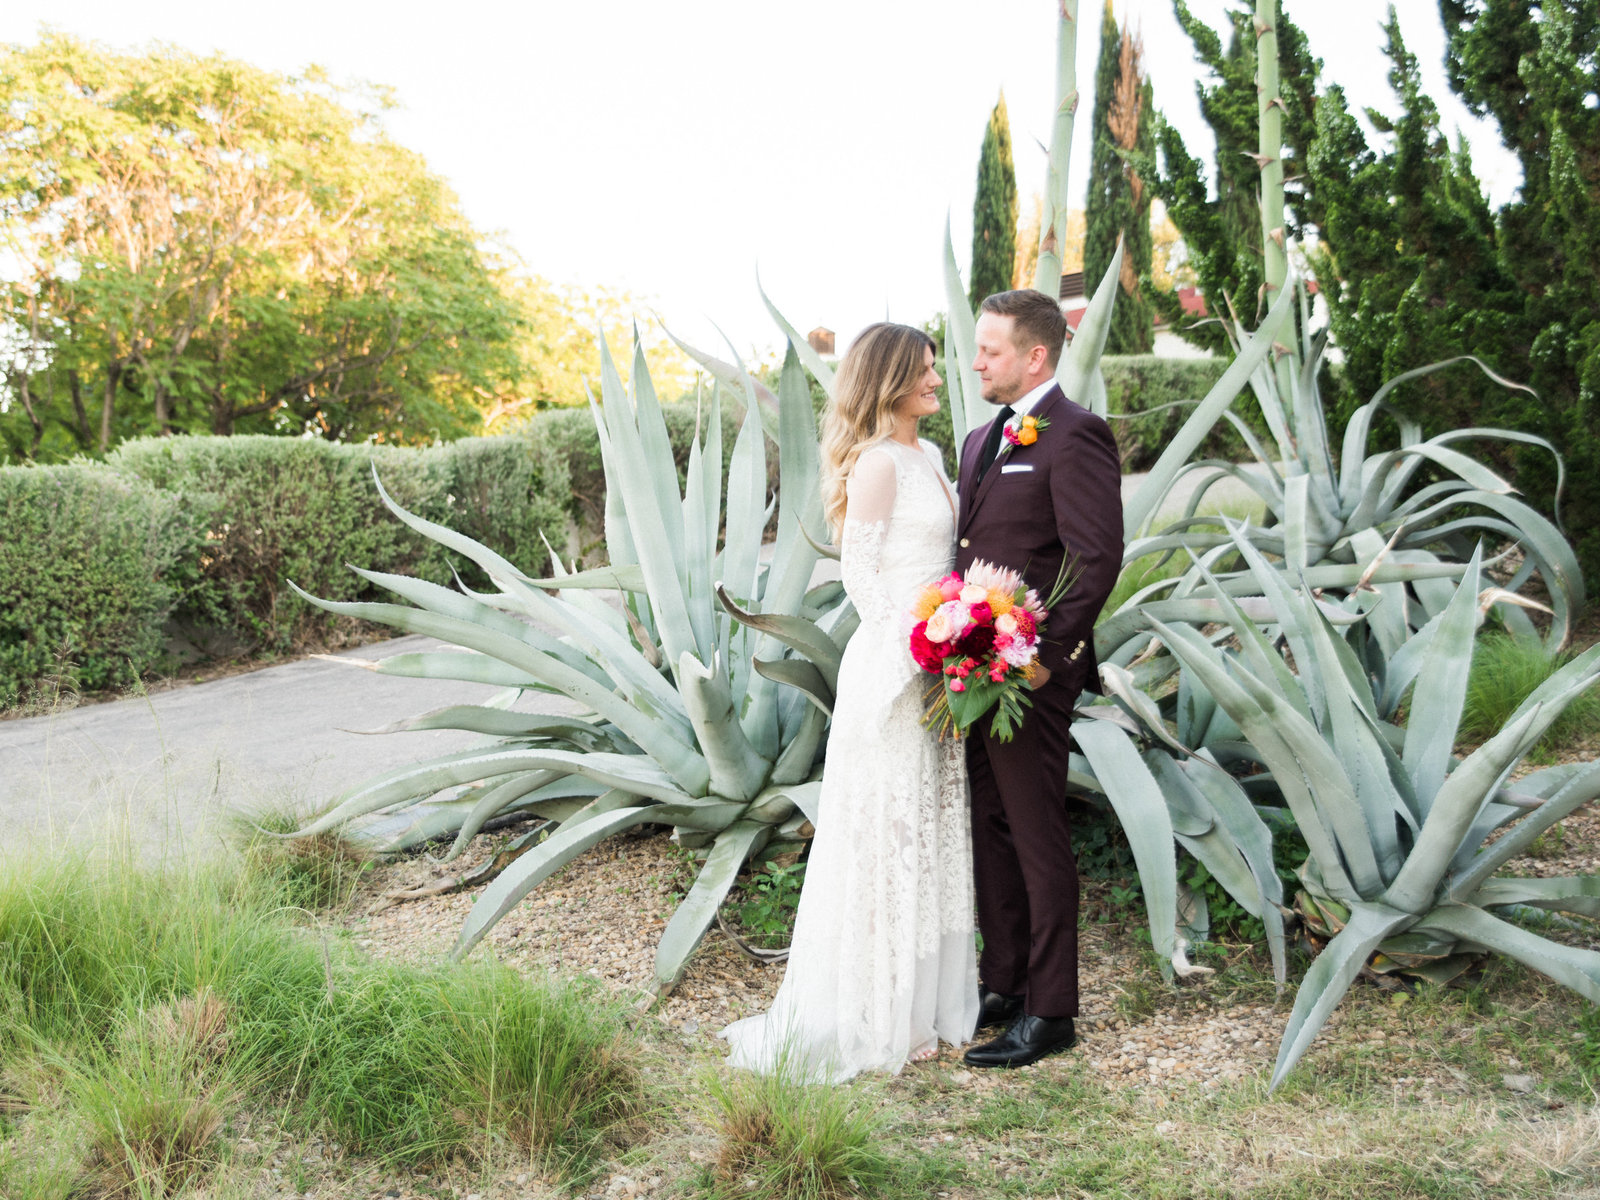 Courtney Hanson Photography - Vintage Tropical Wedding at The Belmont Hotel in Dallas-8153